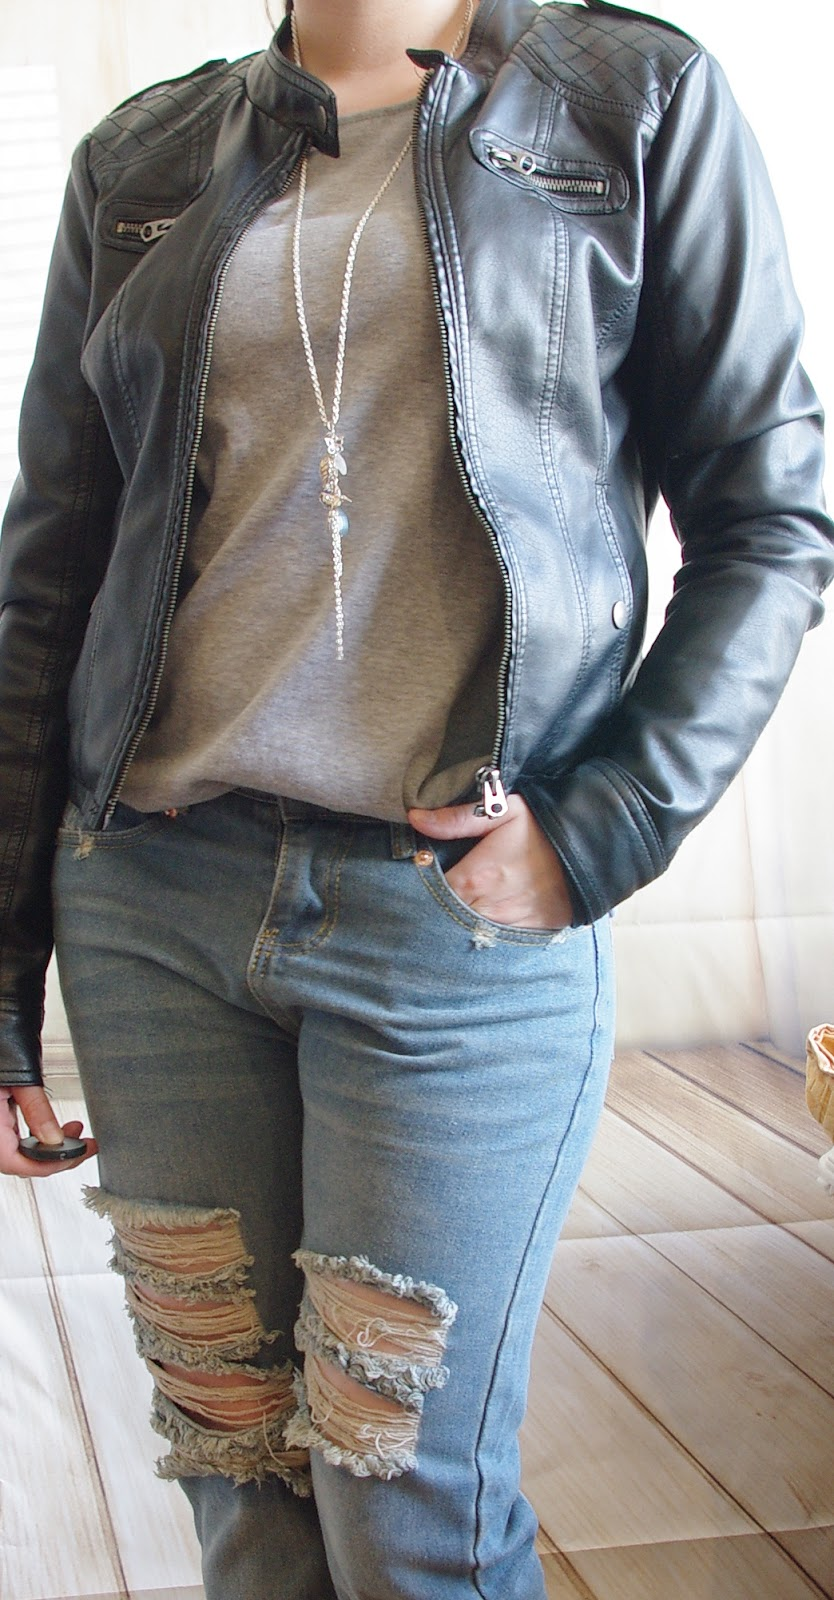 How to style a Boyfriend Jeans